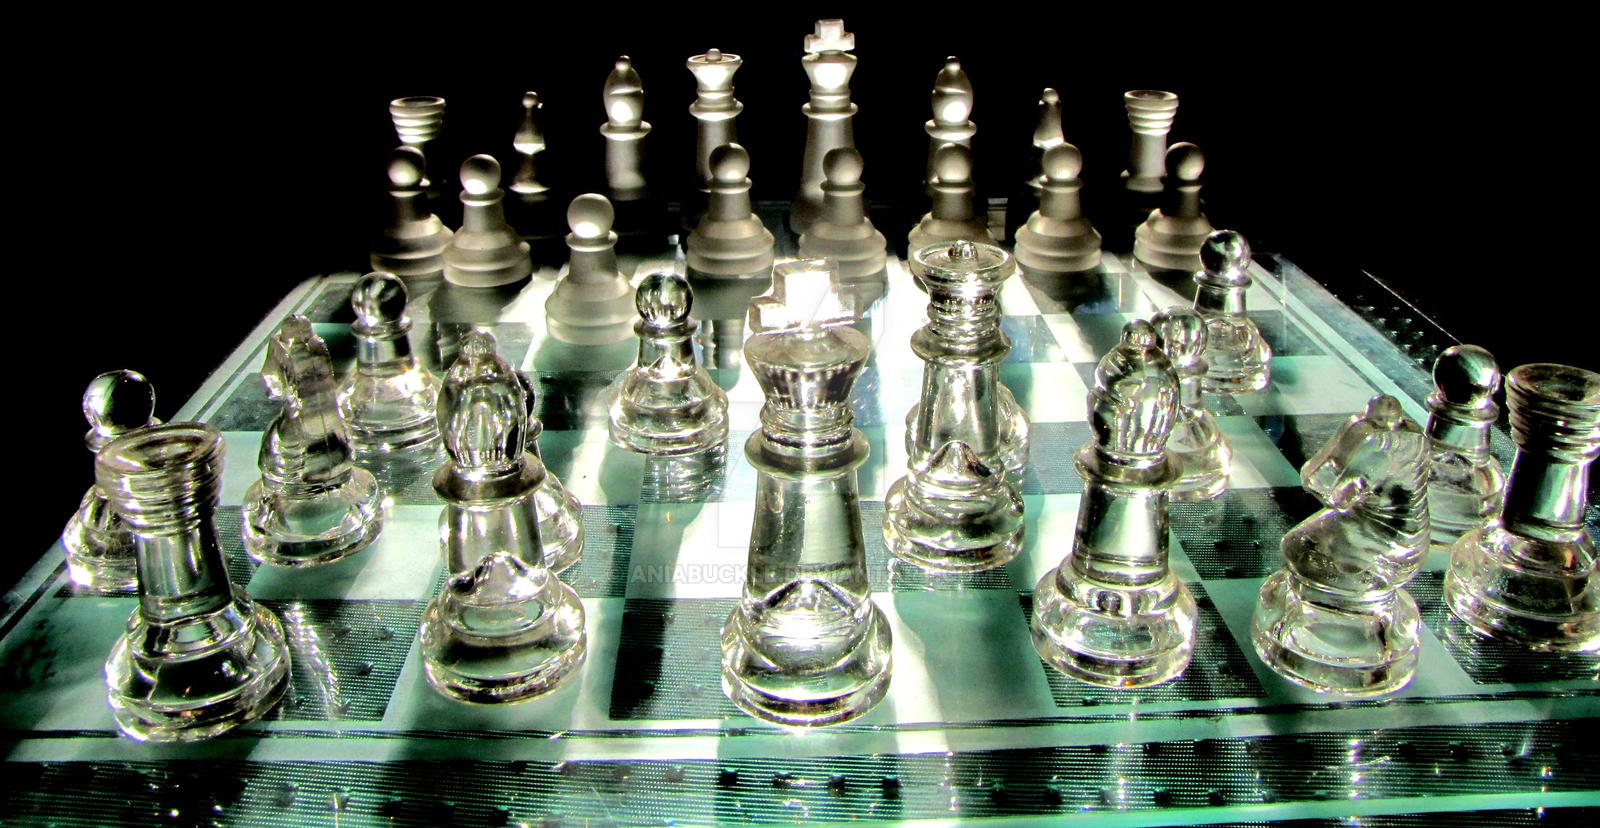 Glass Chess Set Shown At An Angle A Frosted Glass Chess